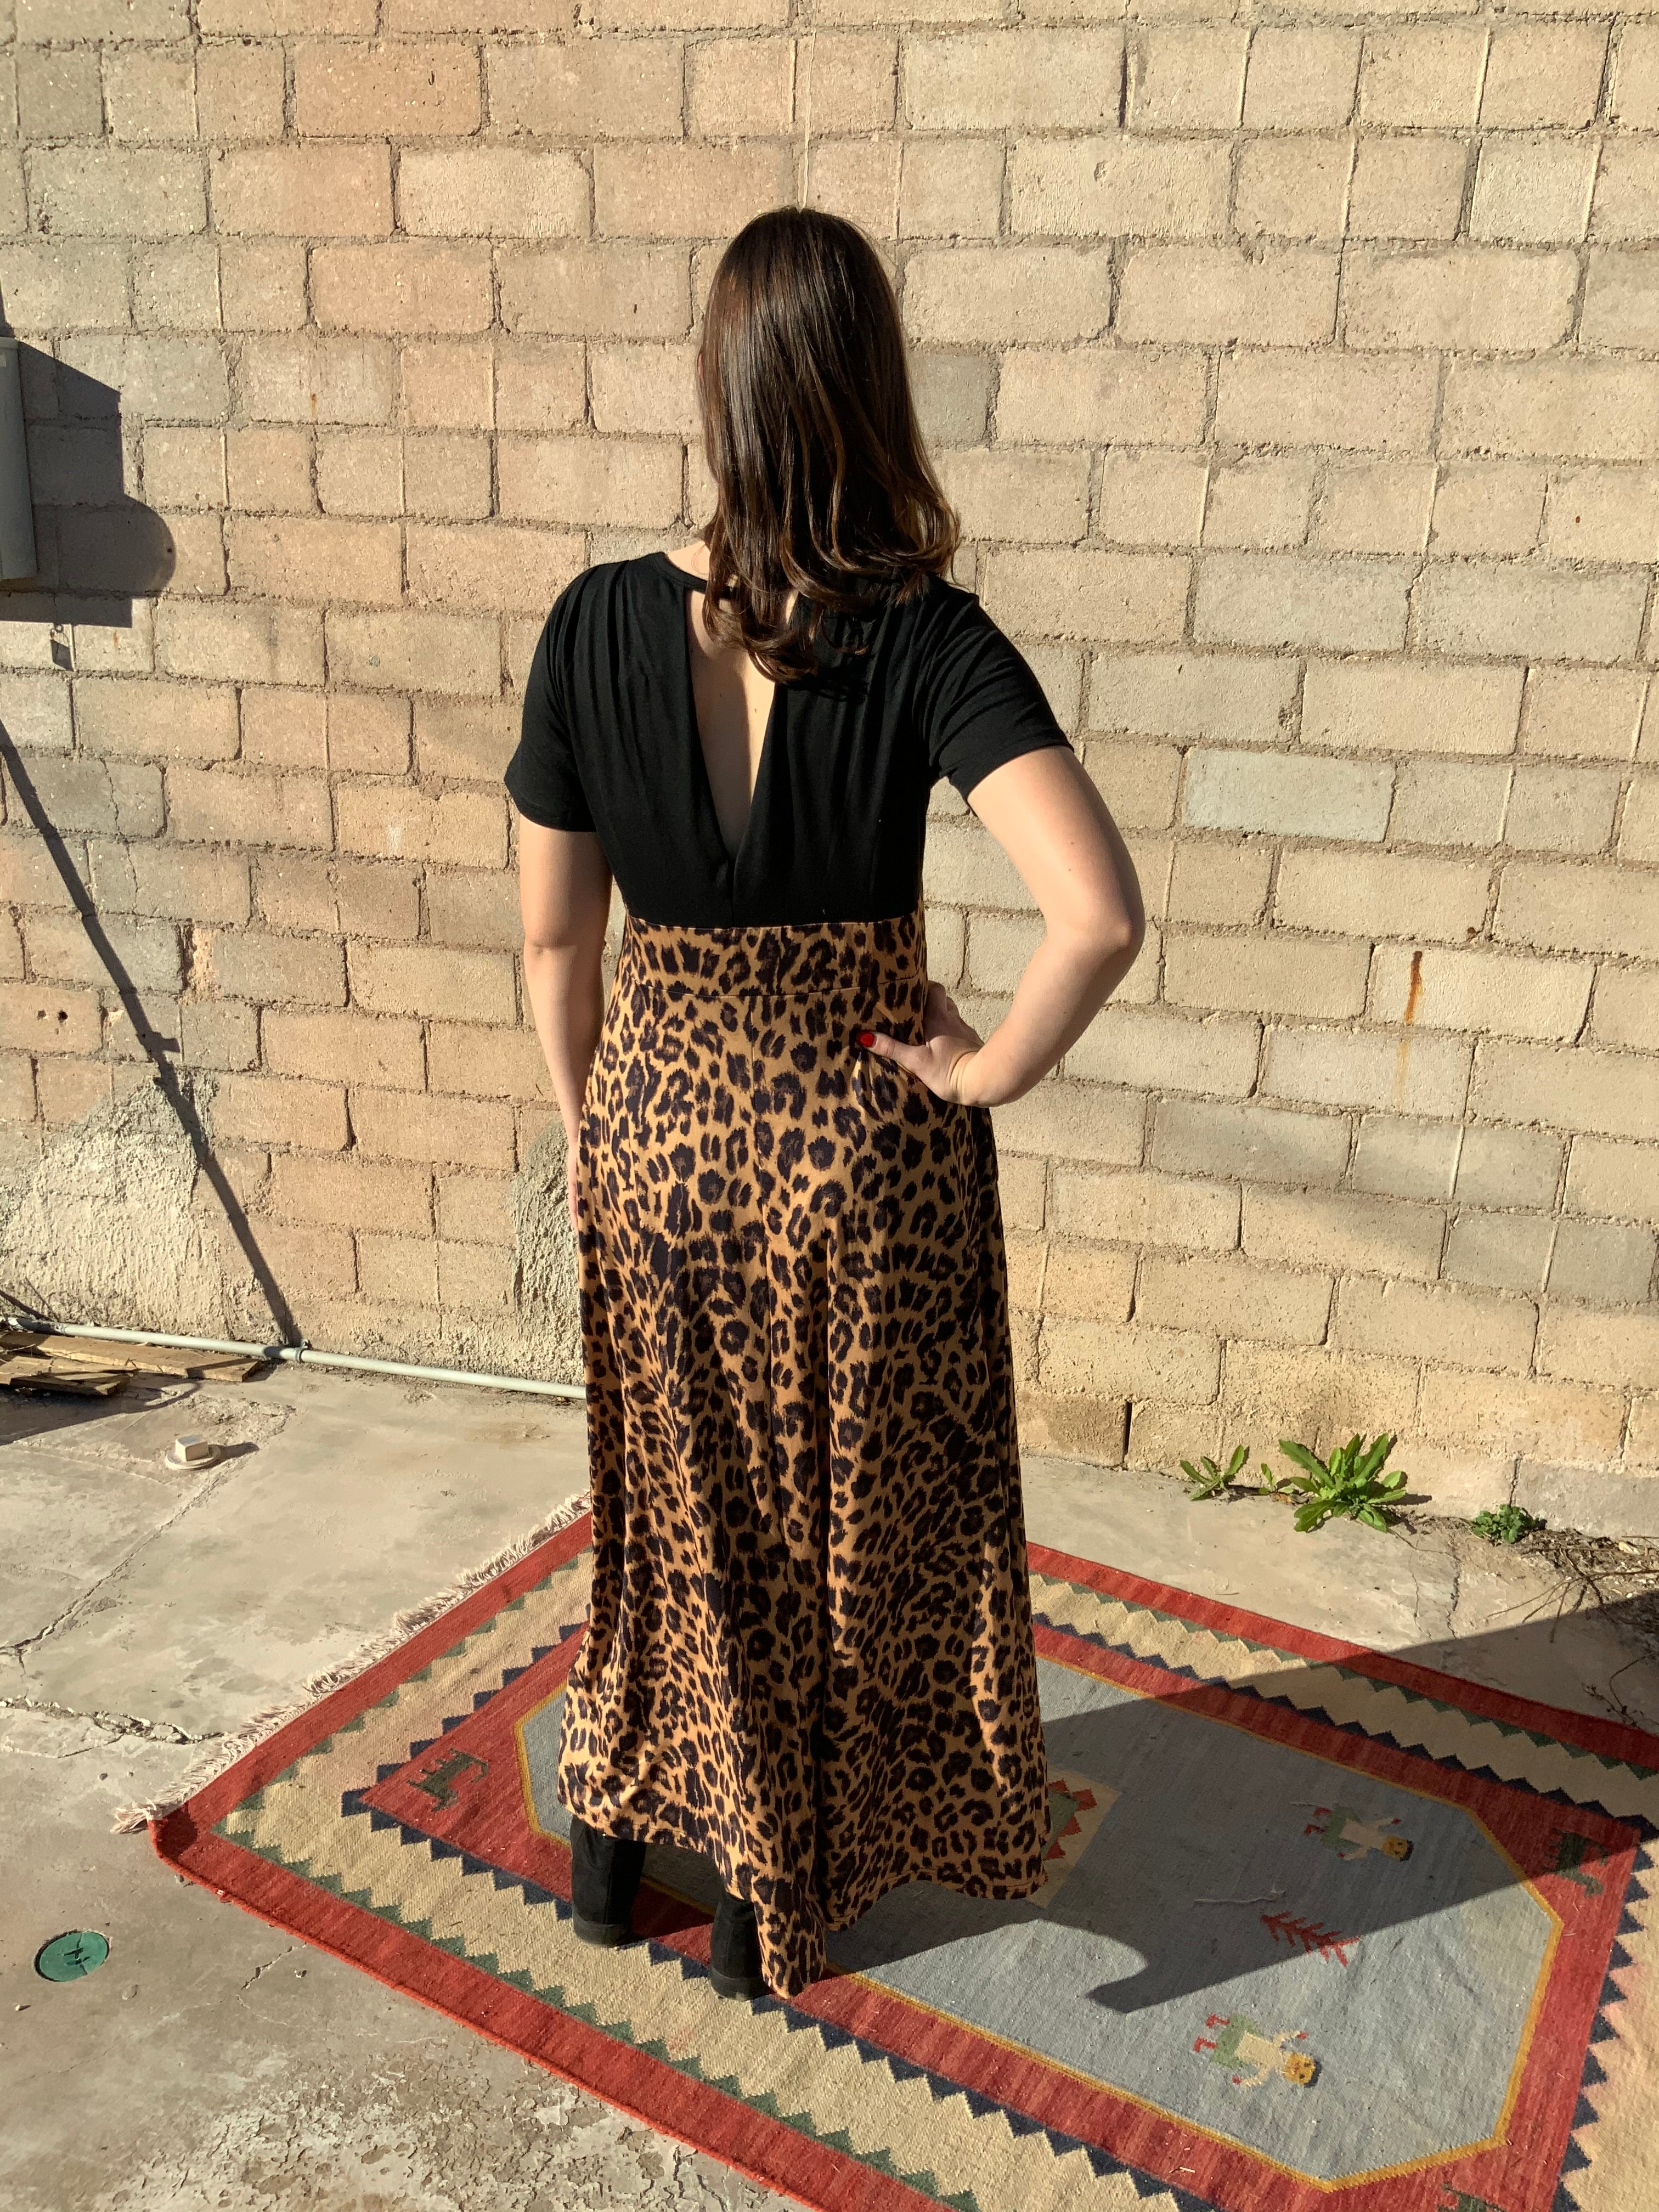 Leopard Dress - The Desert Paintbrush